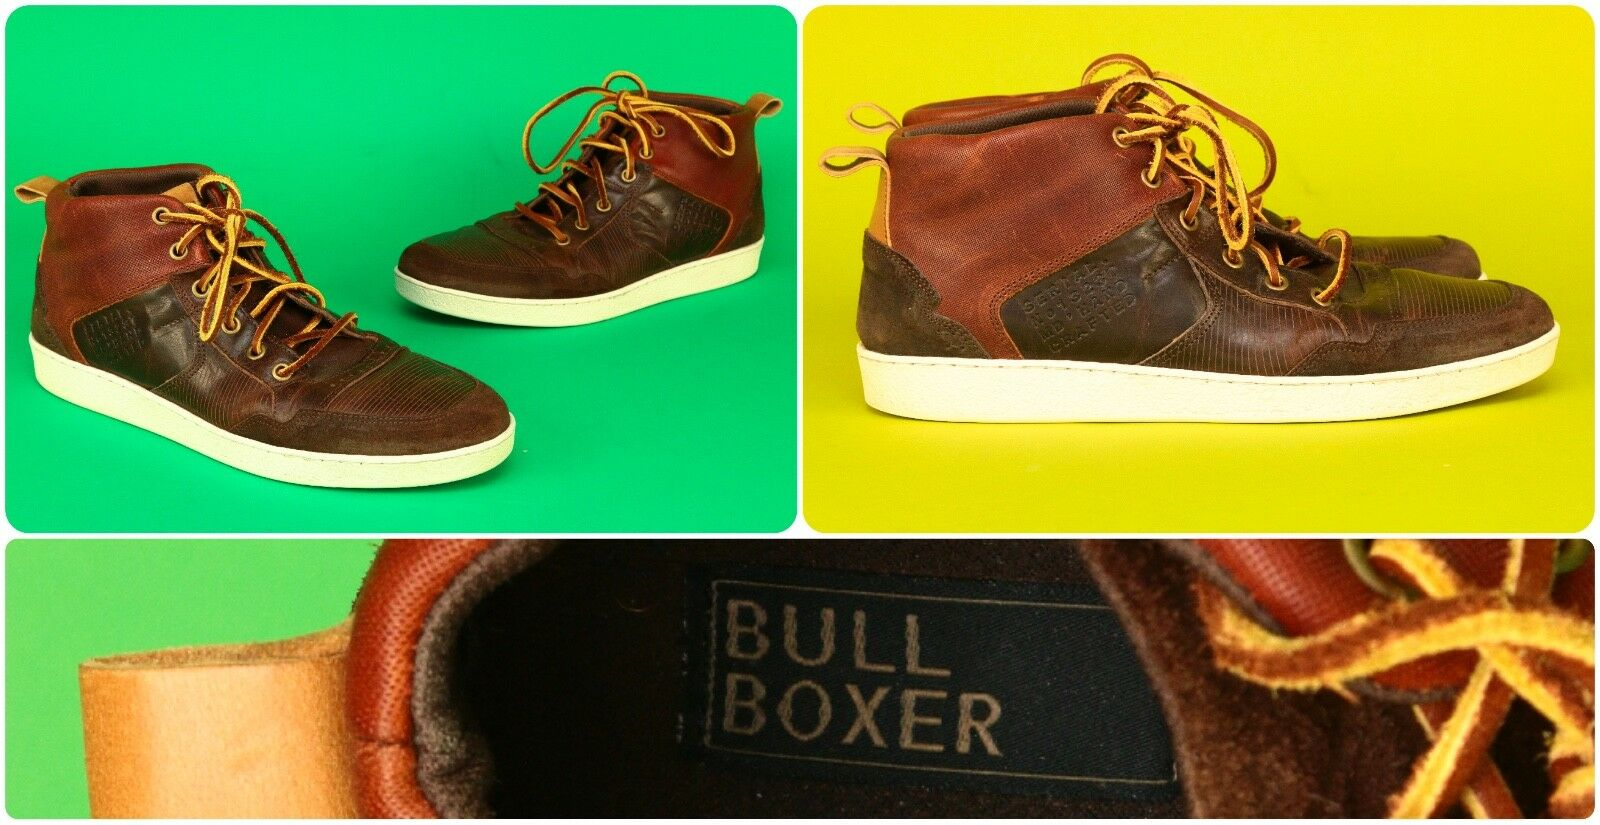 Bull Boxer Men's Sz 10 Leather   Leather shoes   Sneakers - Fast Ship